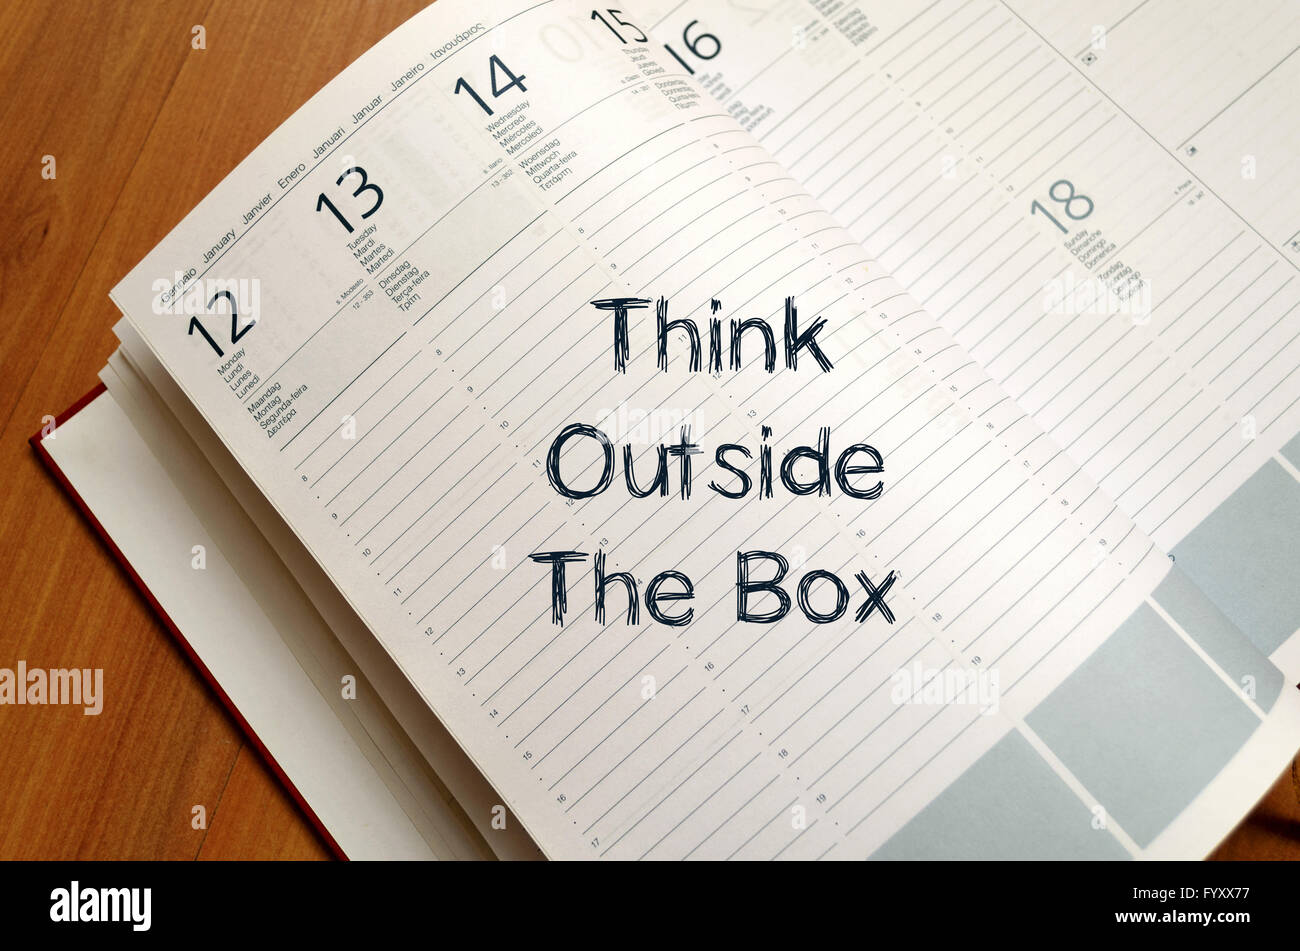 Think outside the box write on notebook - Stock Image